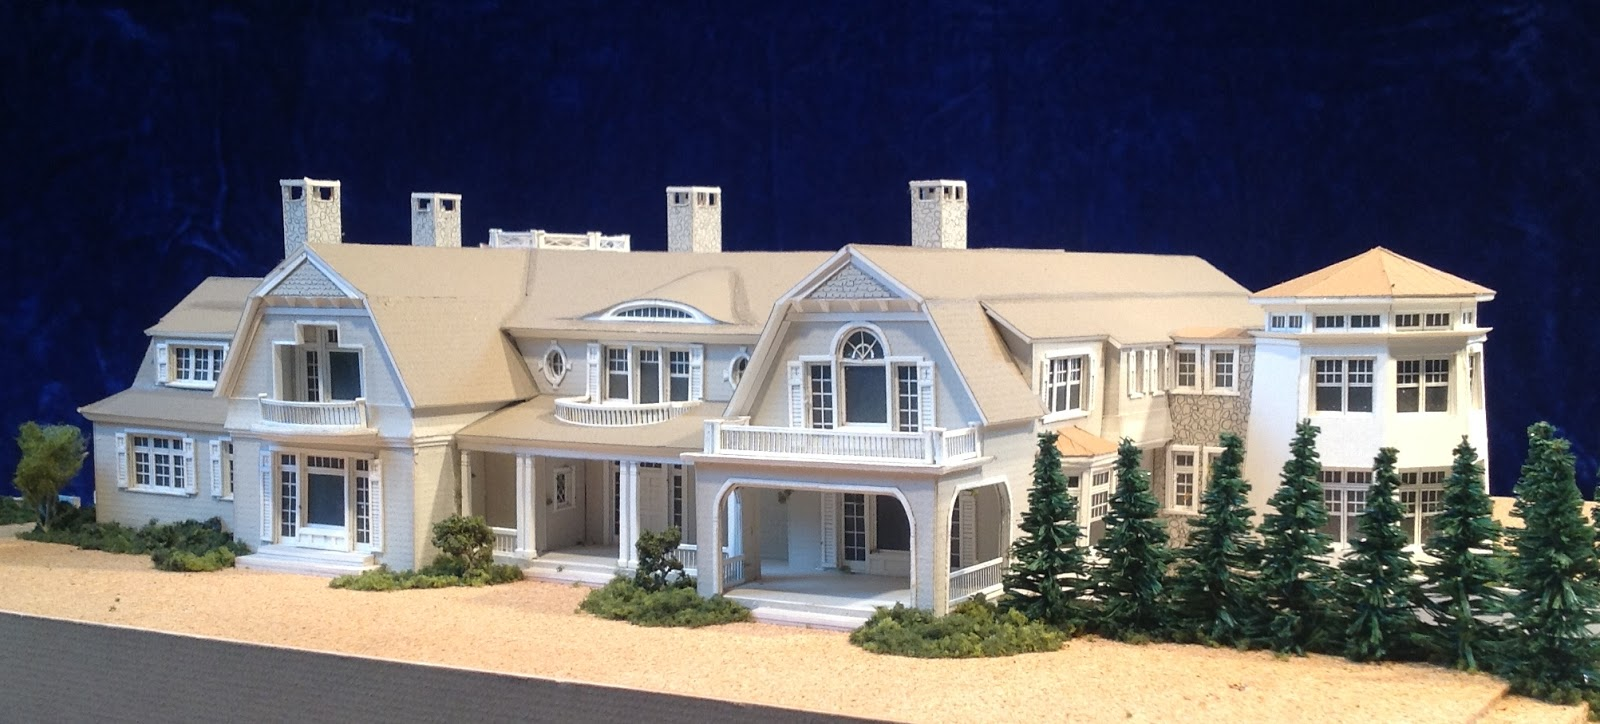 Architectural house models of houses in the hamptons long for Architecture house models